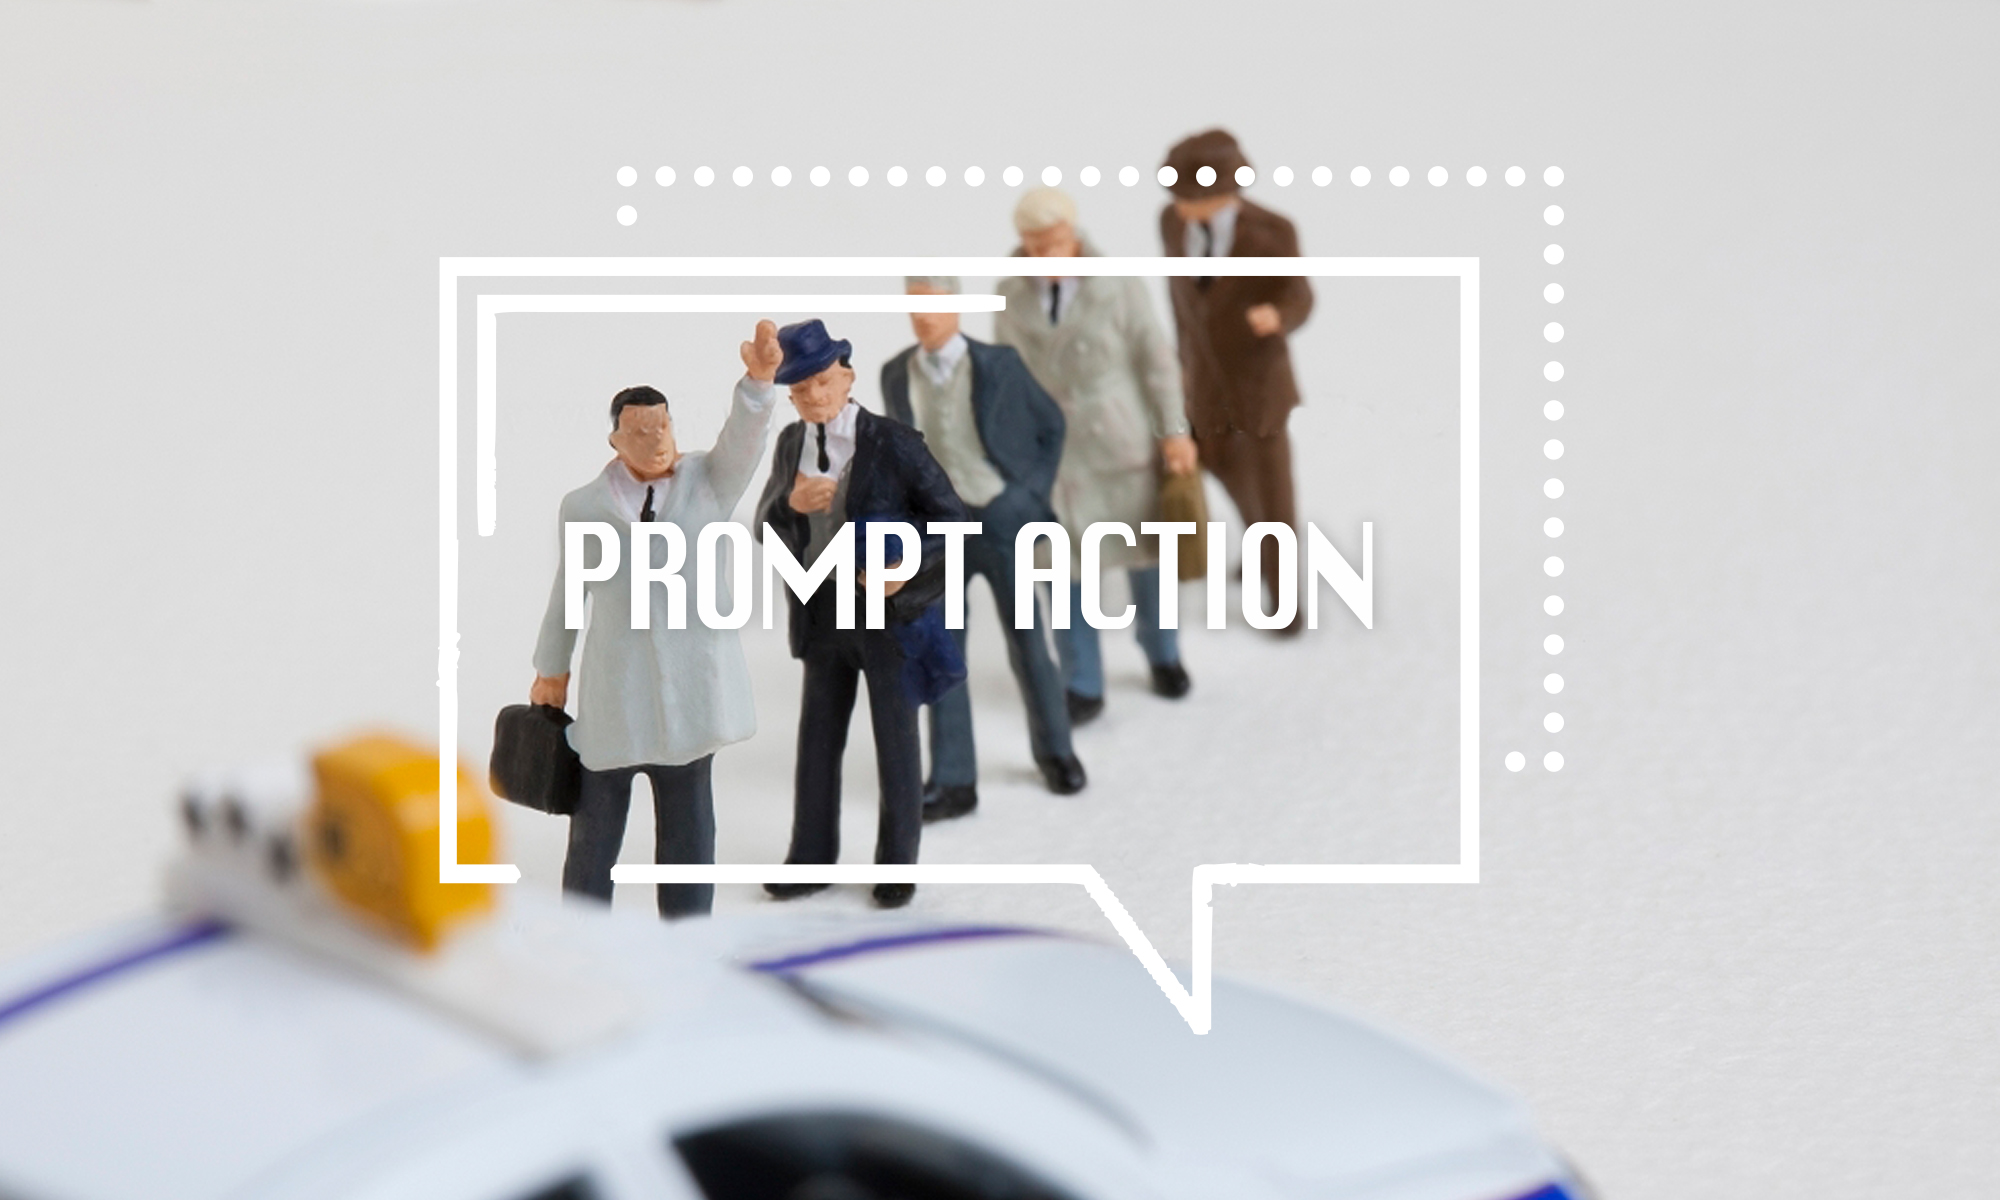 prompt-action